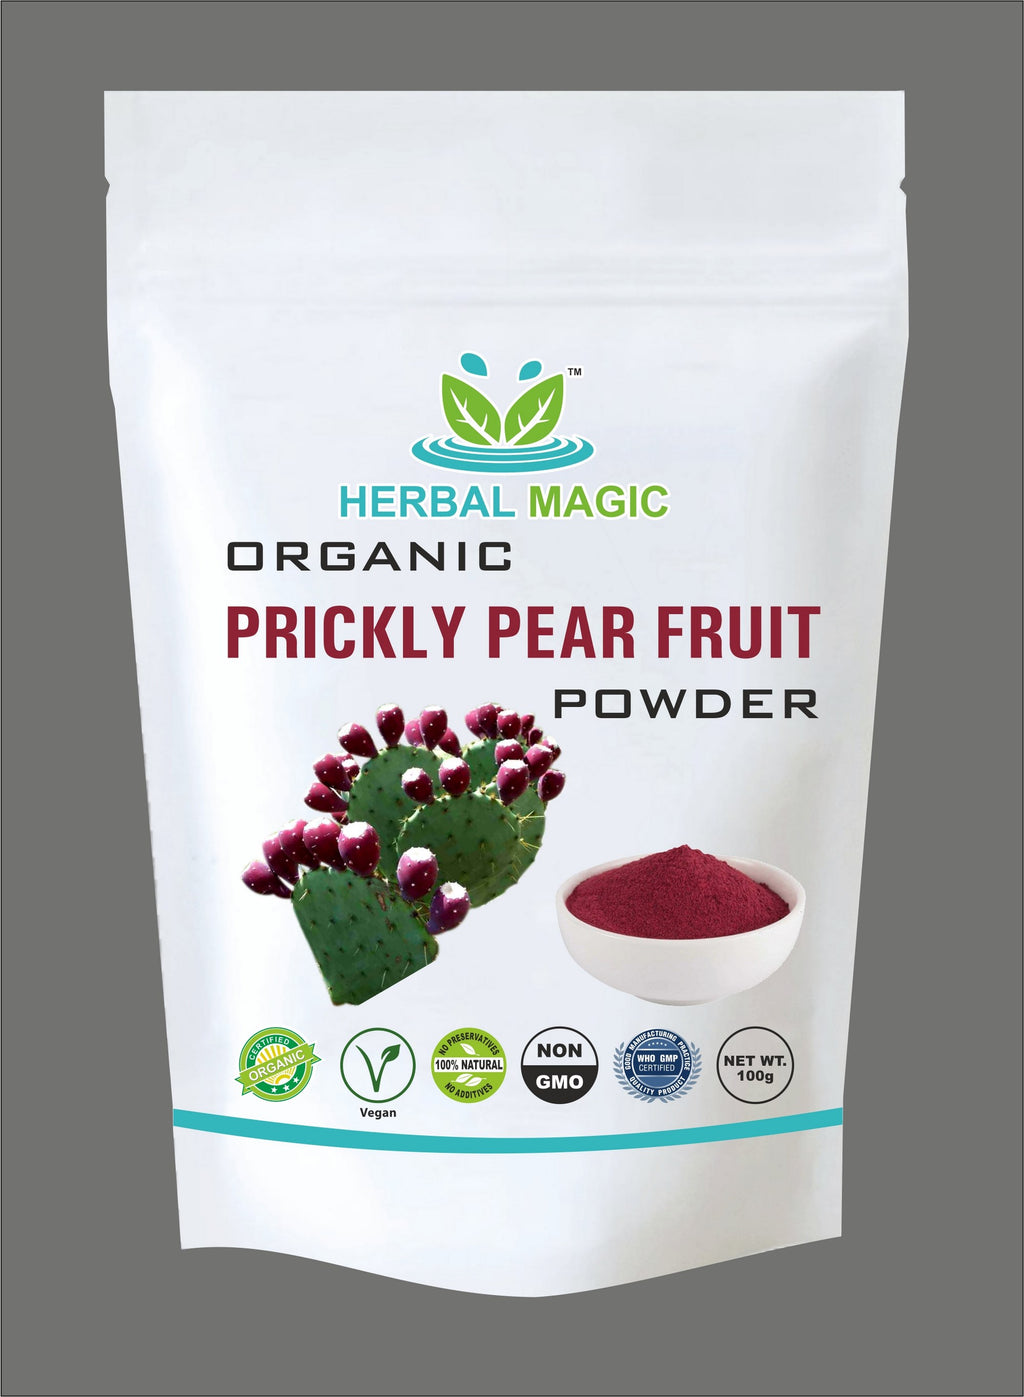 Please select one - Certified Organic Prickly pear Fruit Powder (100g) or Capsules (60) - Rich in Calcium, Vitamin C A Minerals - Whole Plant Used